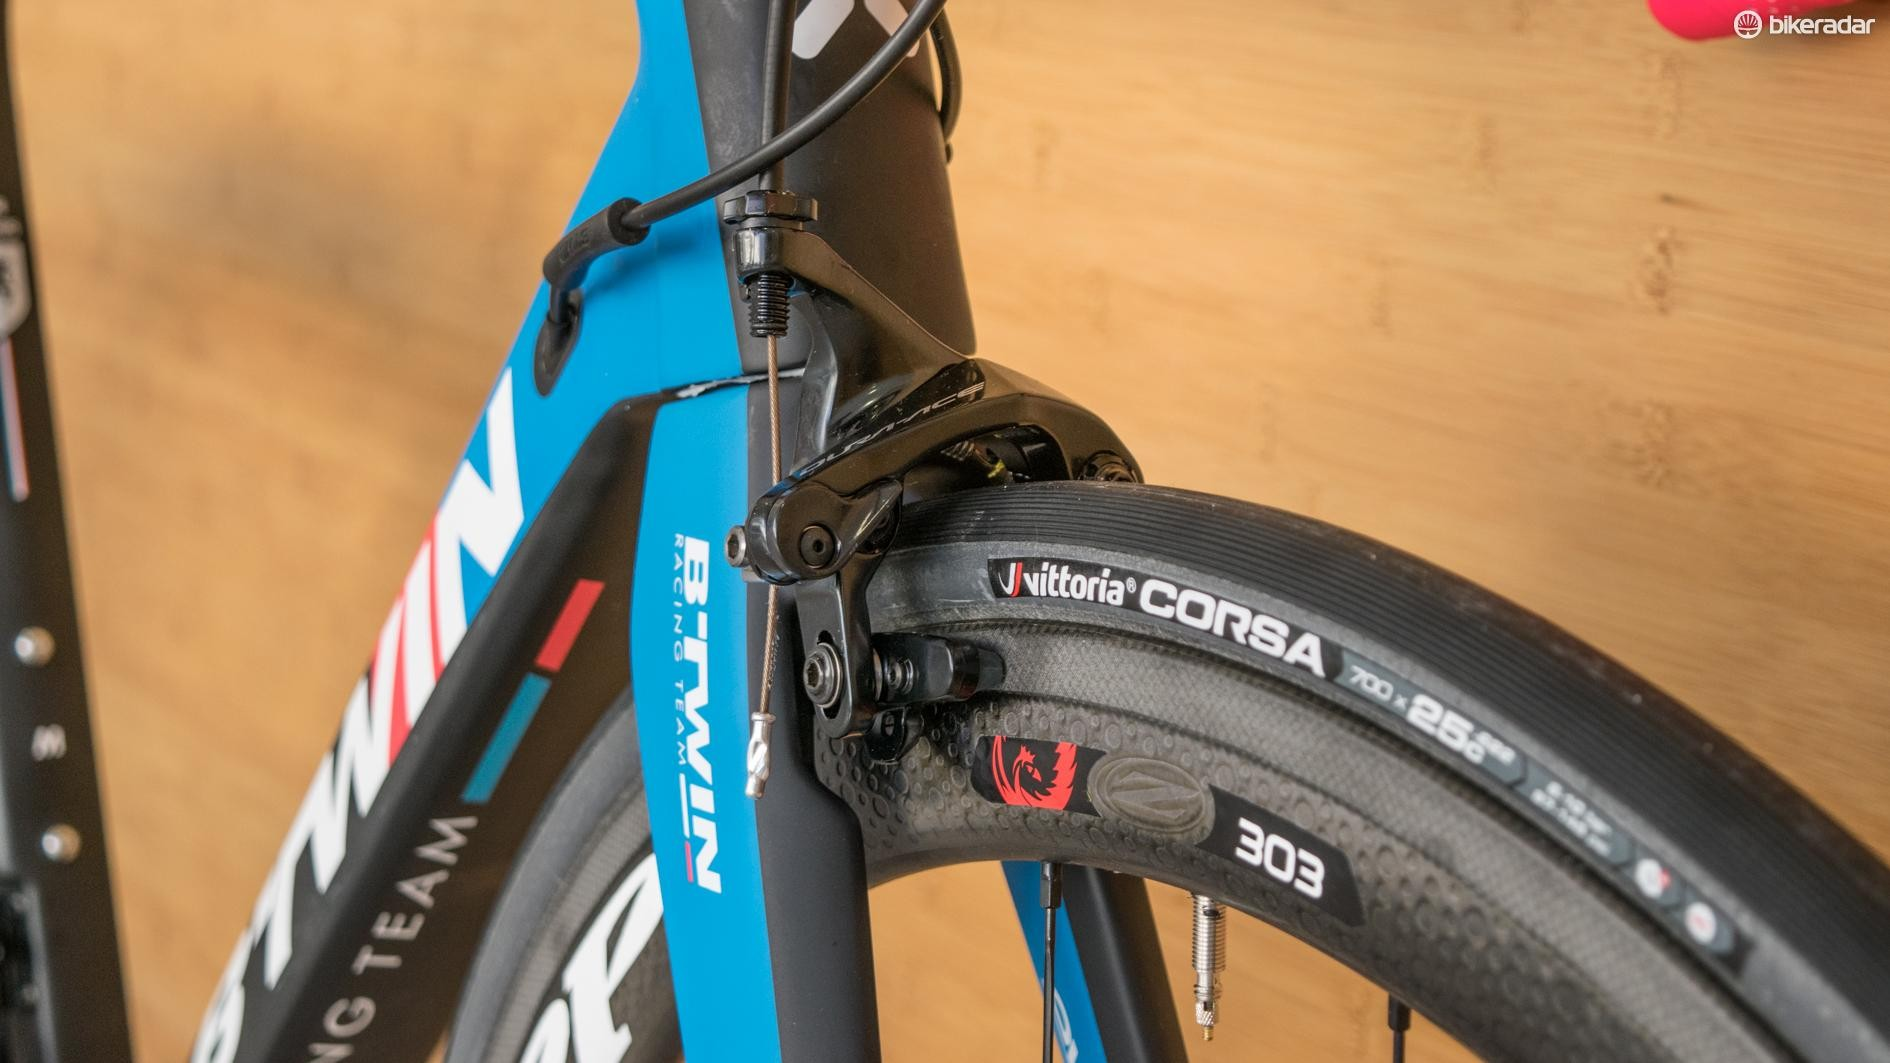 Zipps, direct mount Dura-Ace brakes and Vittoria graphene tyres — there's a lot to like here!